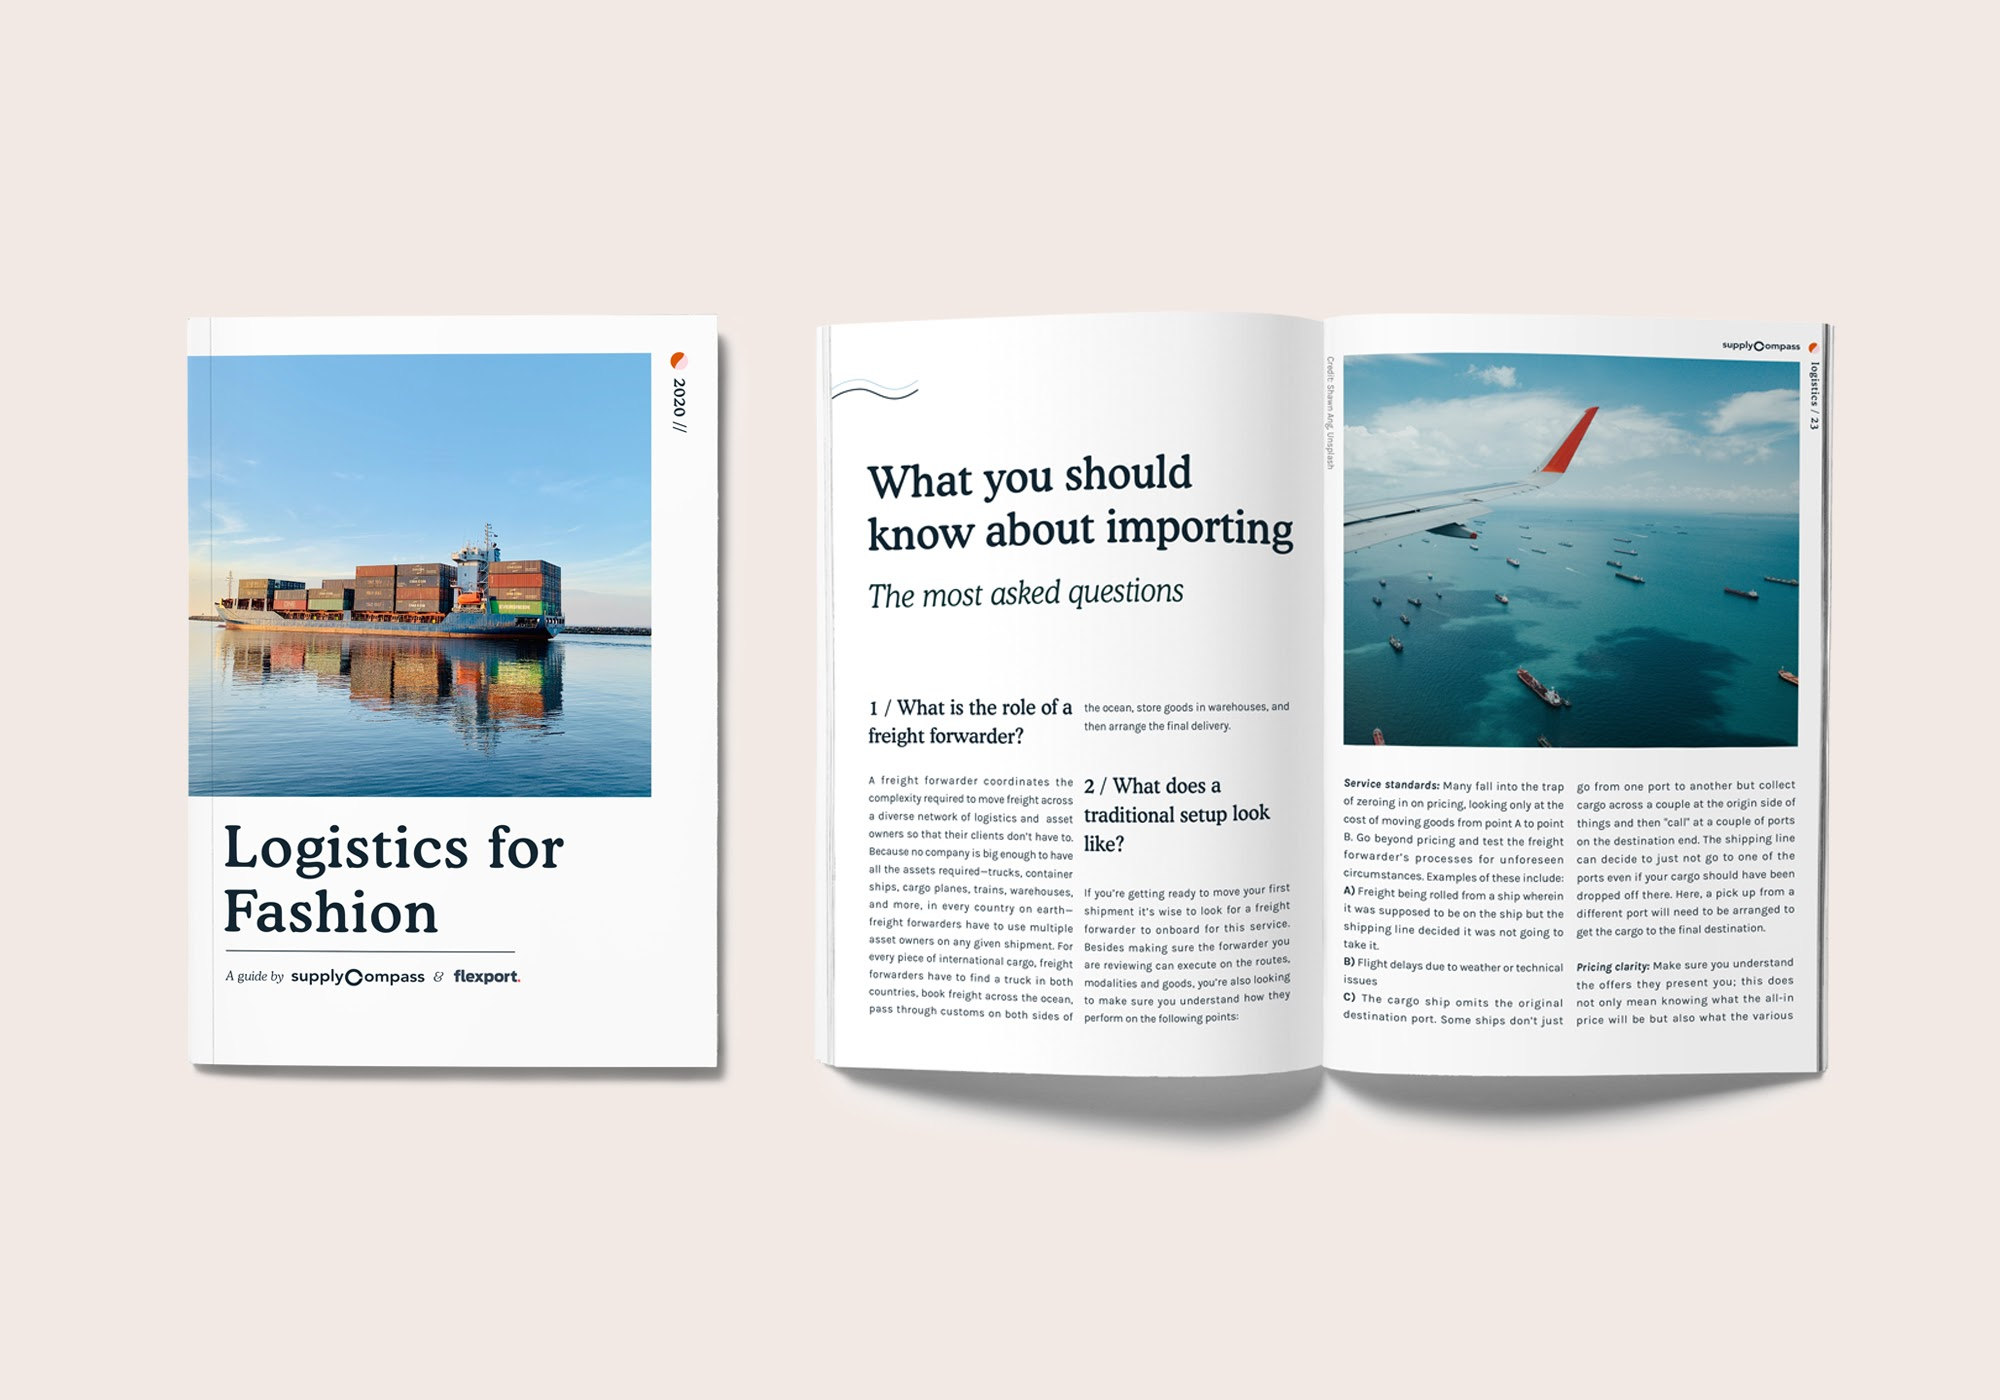 SUPPLYCOMPASS AND FLEXPORT RELEASE FASHION LOGISTICS GUIDE DEMYSTIFYING THE PRODUCTION-TO-DELIVERY PROCESS FOR THE FASHION INDUSTRY